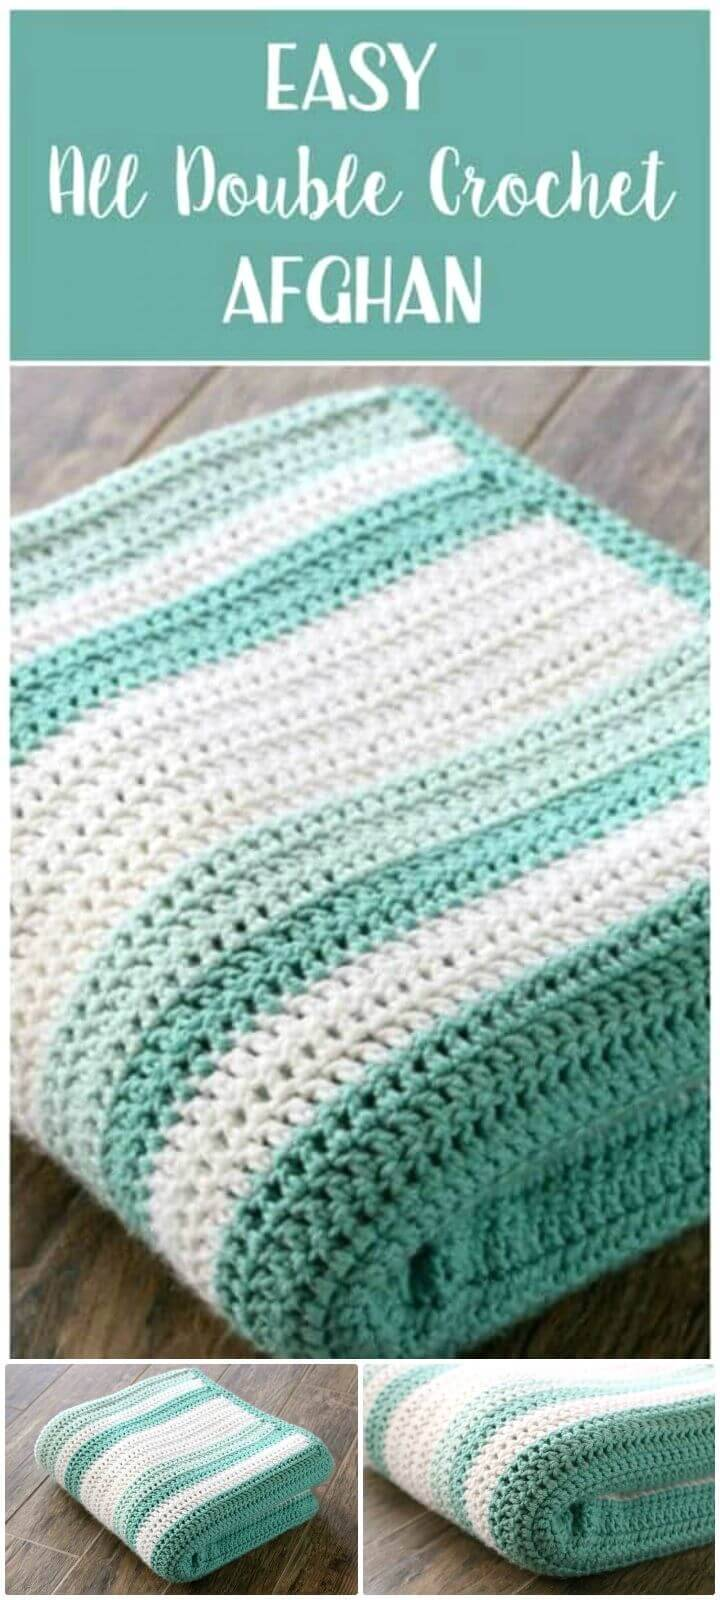 How To Easy Free Crochet All Double Afghan Pattern